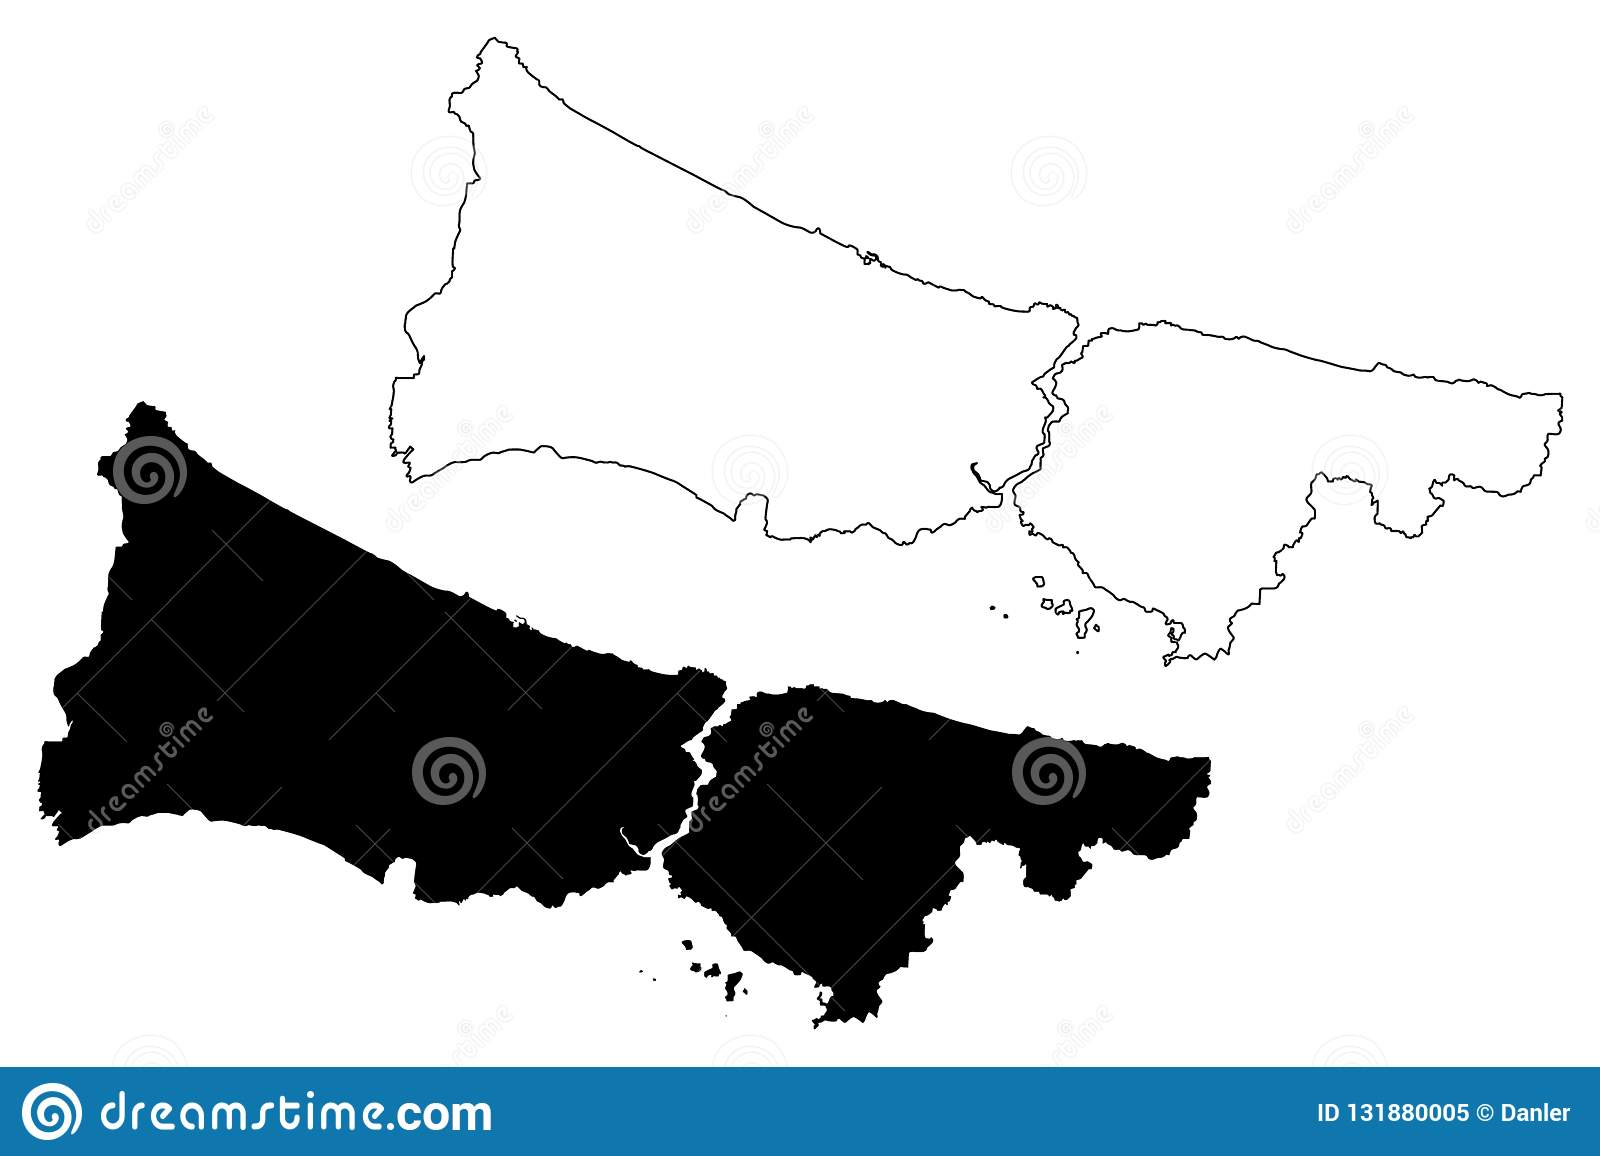 Istanbul map vector stock vector. Illustration of abstract ...